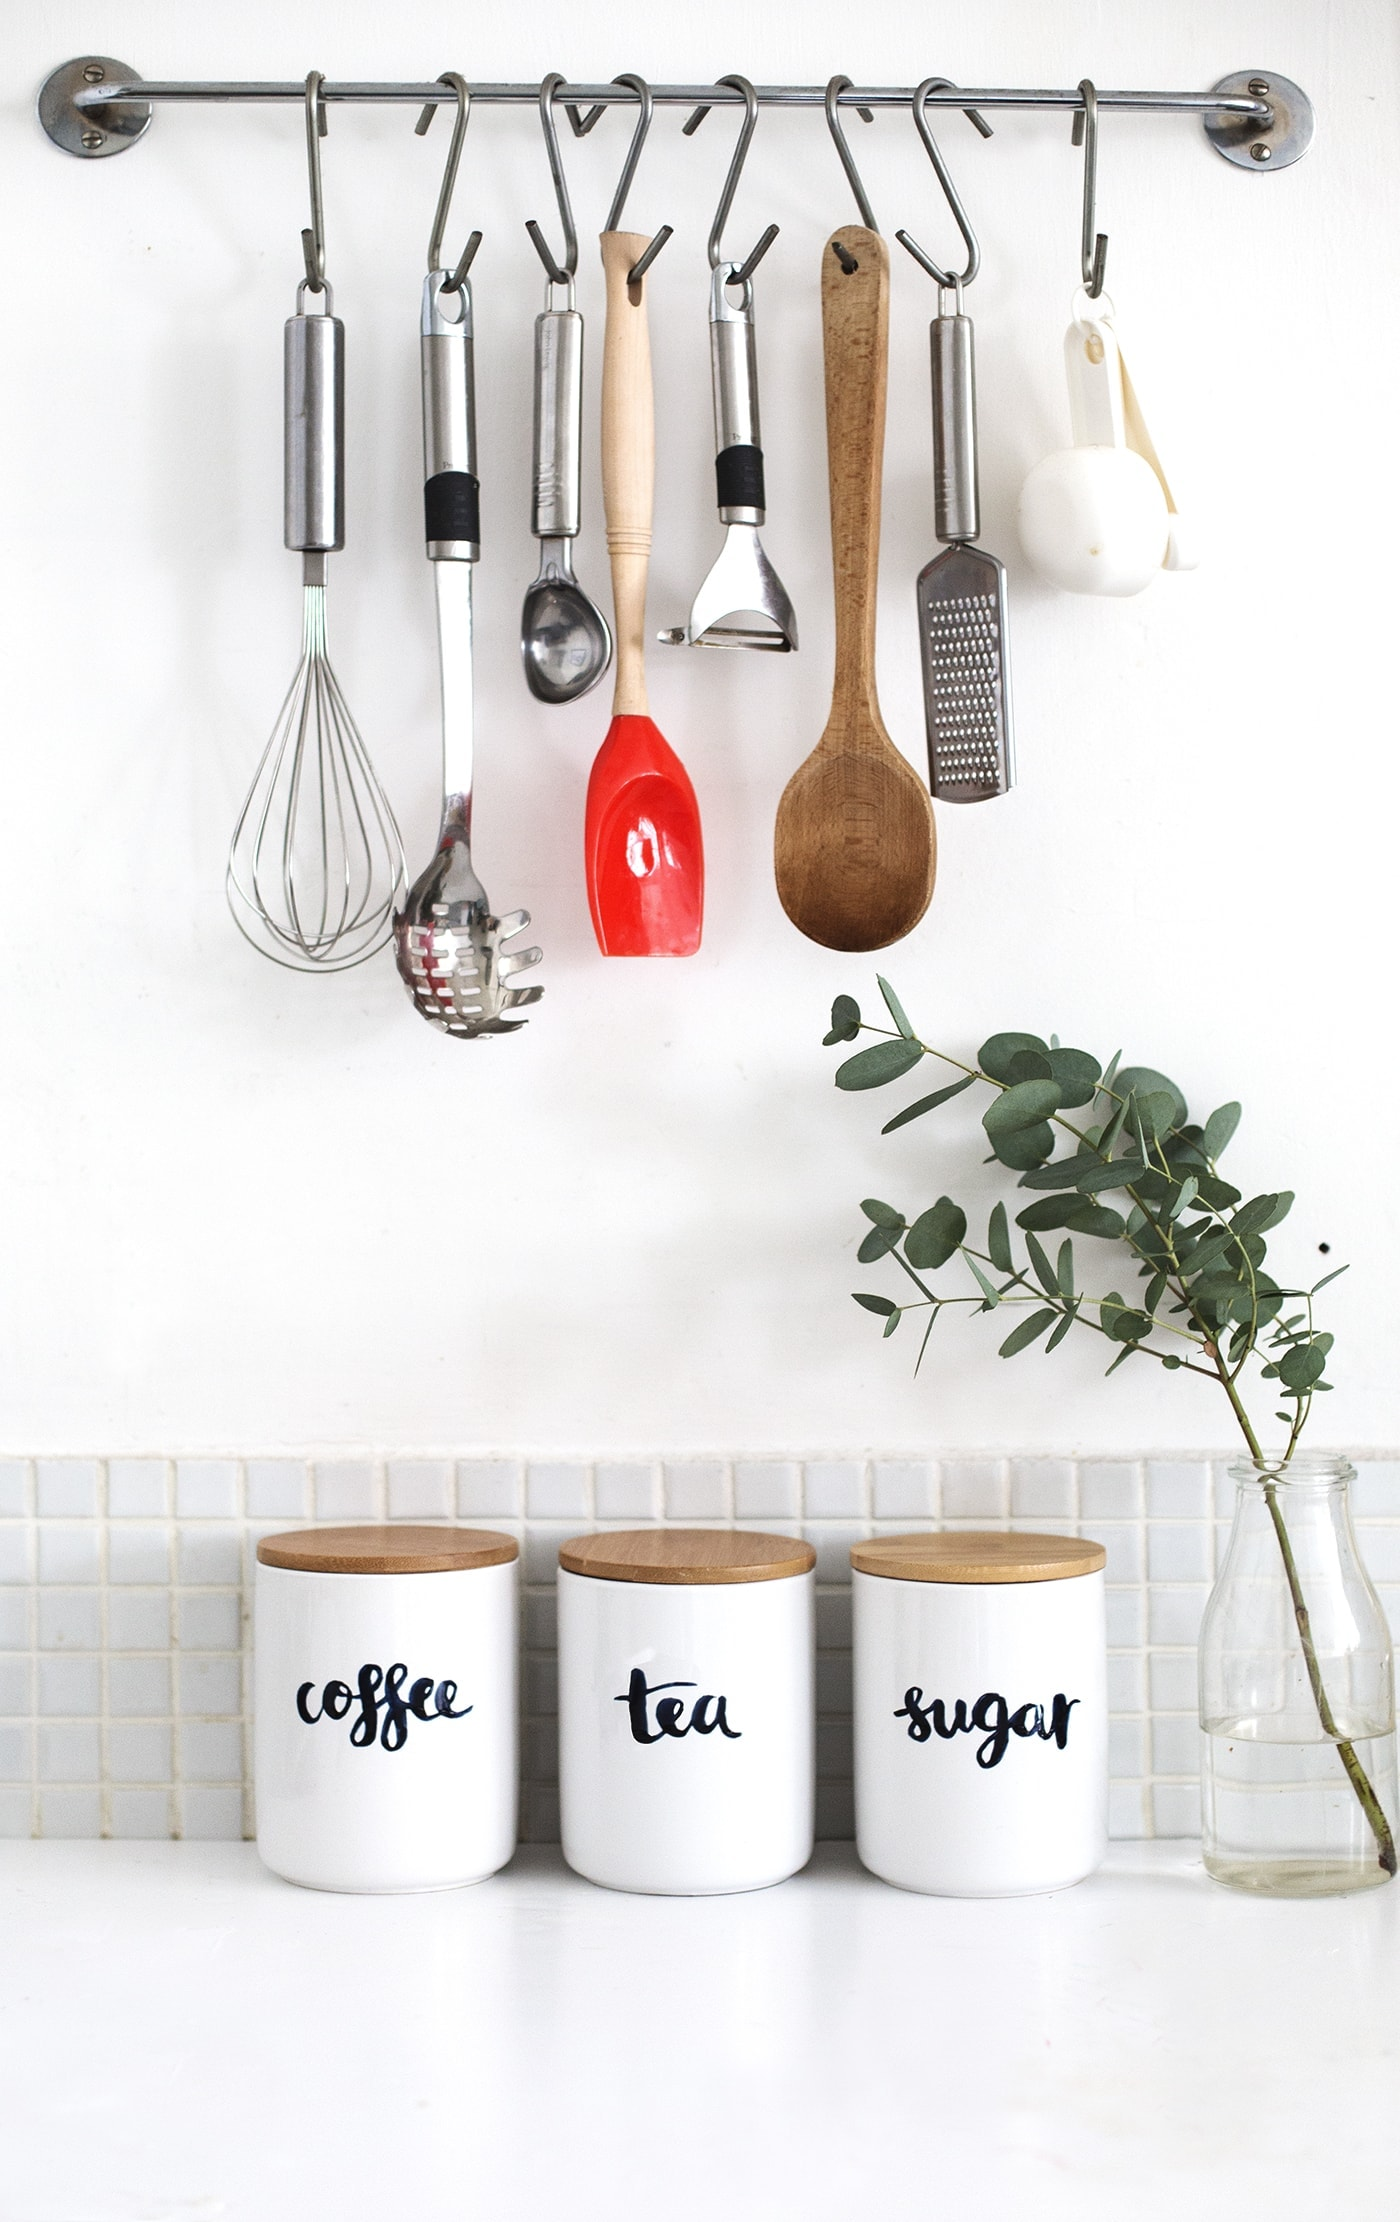 Personalized Kitchen Storage | Food Storage Ideas for Small Homes